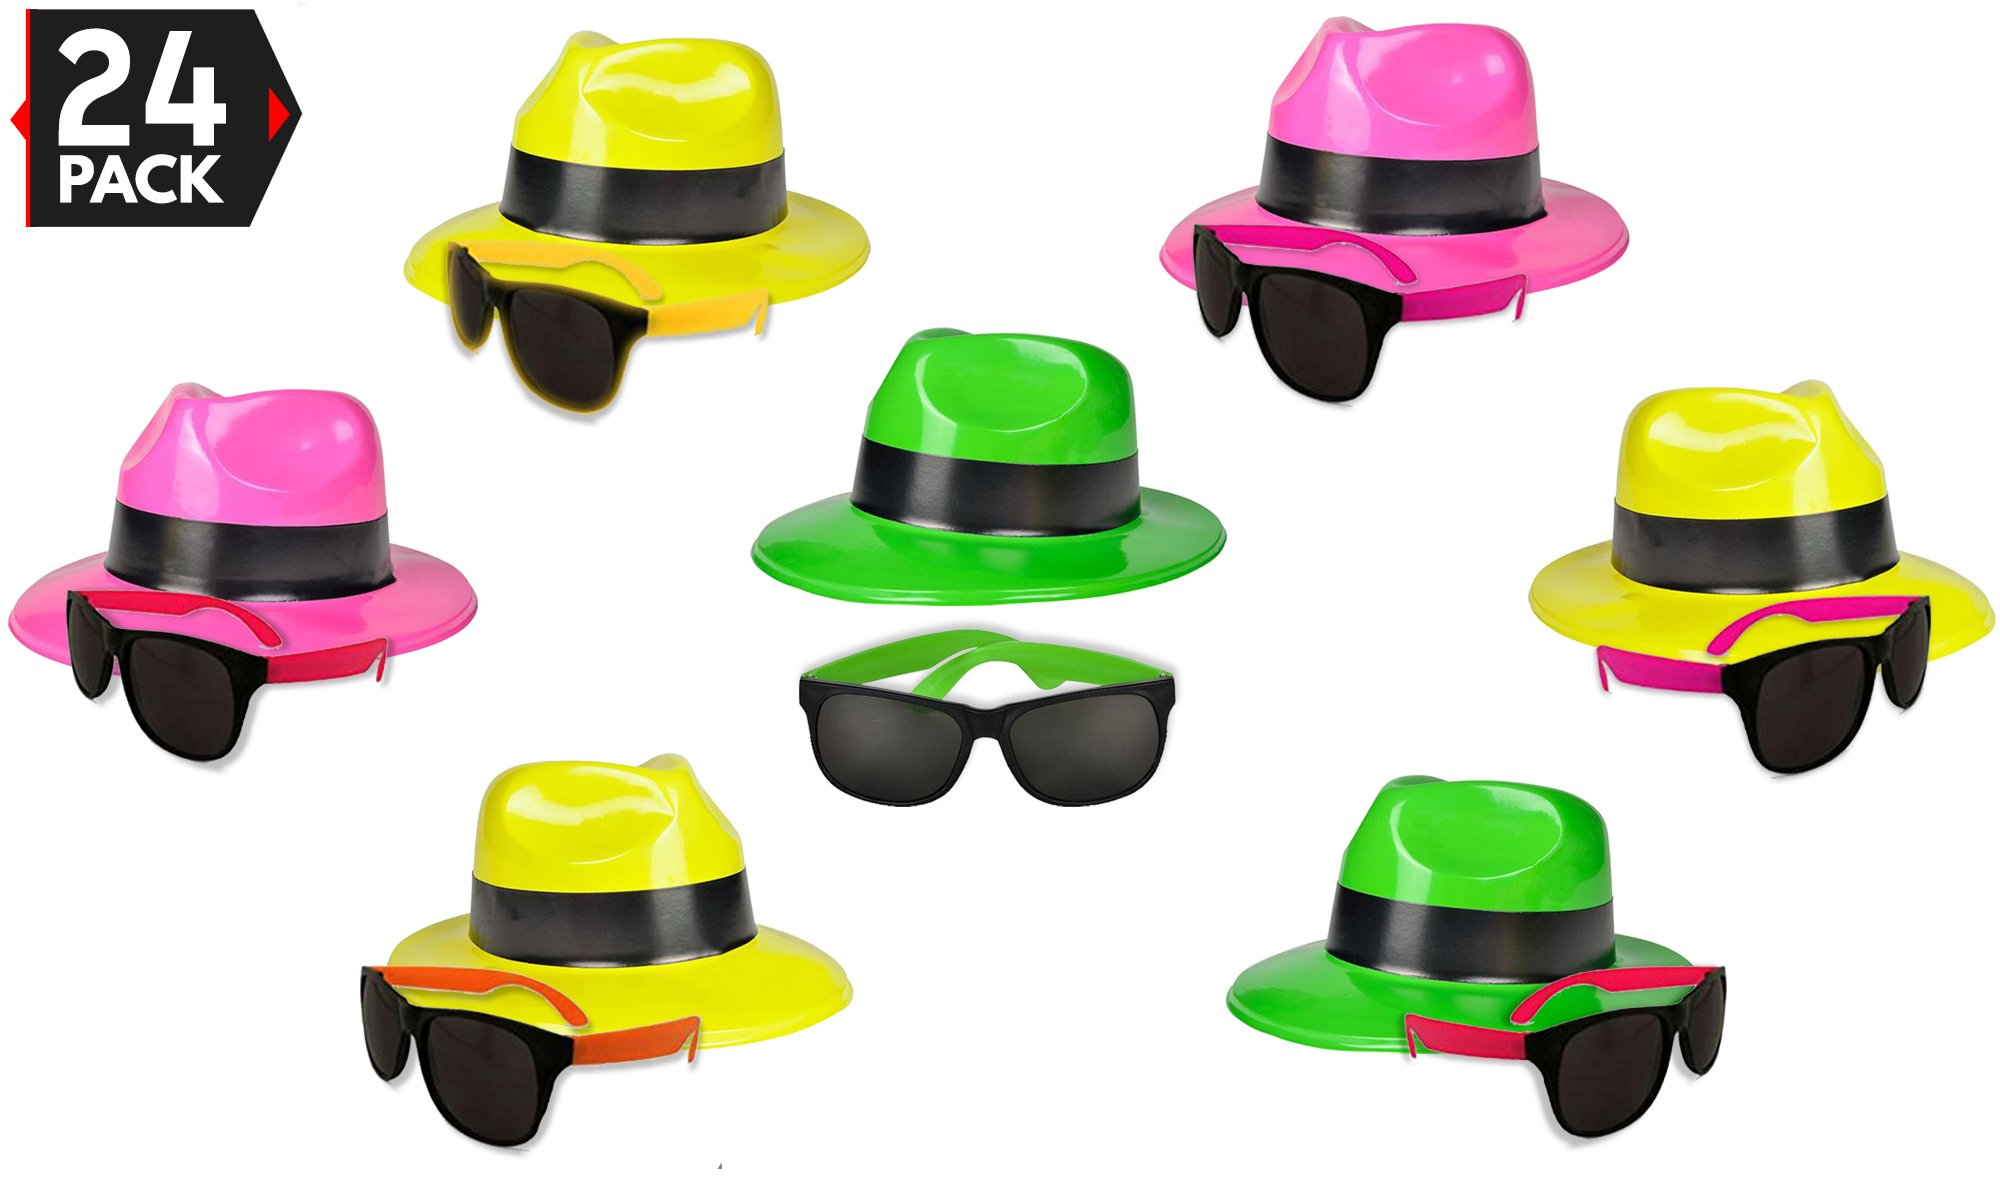 24 Neon Party Supplies Pack - Party Favors Assortment - 12 Neon Sunglasses & 12 Neon Plastic Gangster Hats - Fun Party Toys